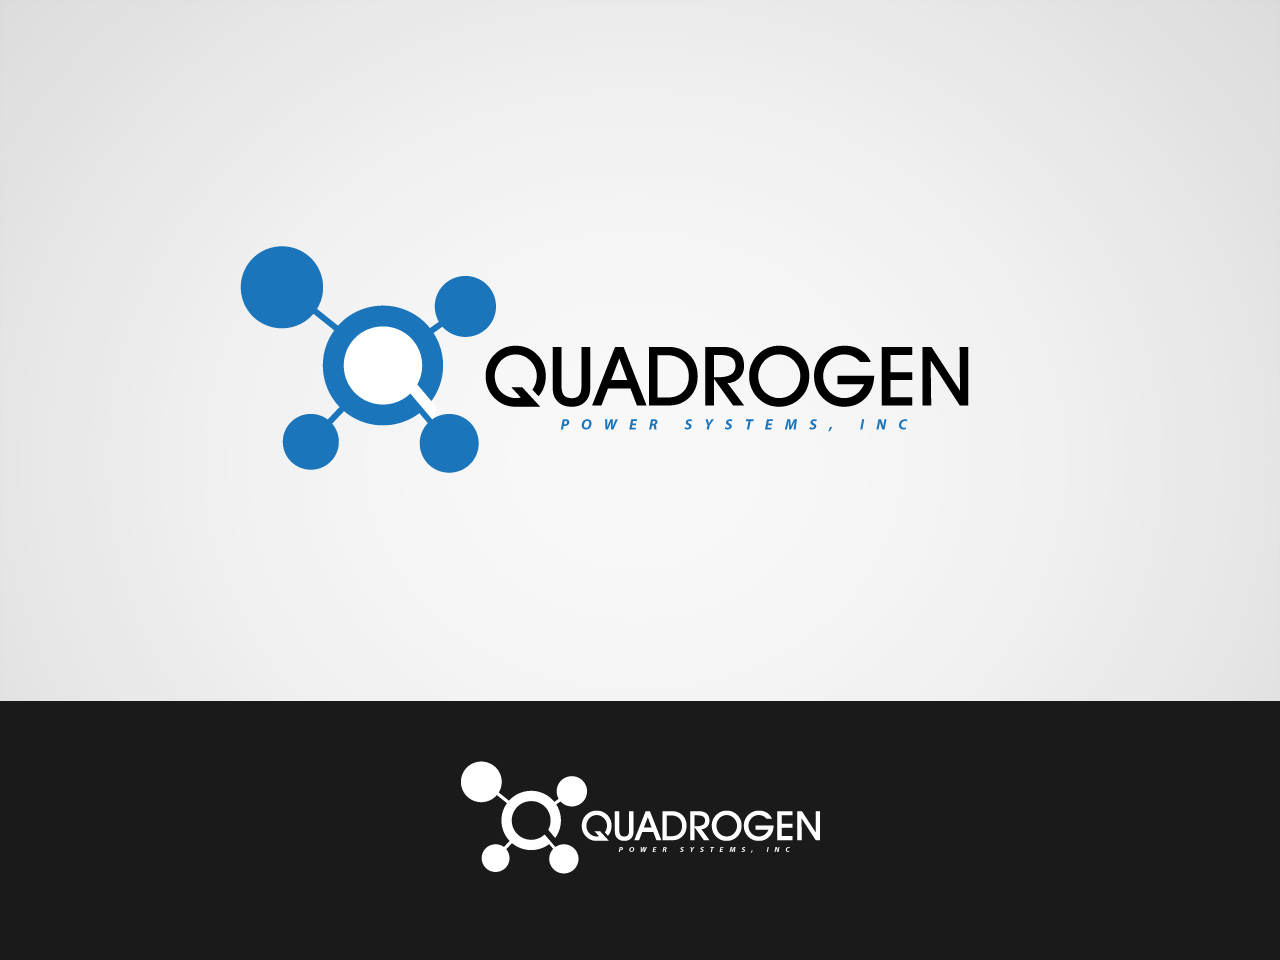 Logo Design by jpbituin - Entry No. 112 in the Logo Design Contest New Logo Design for Quadrogen Power Systems, Inc.